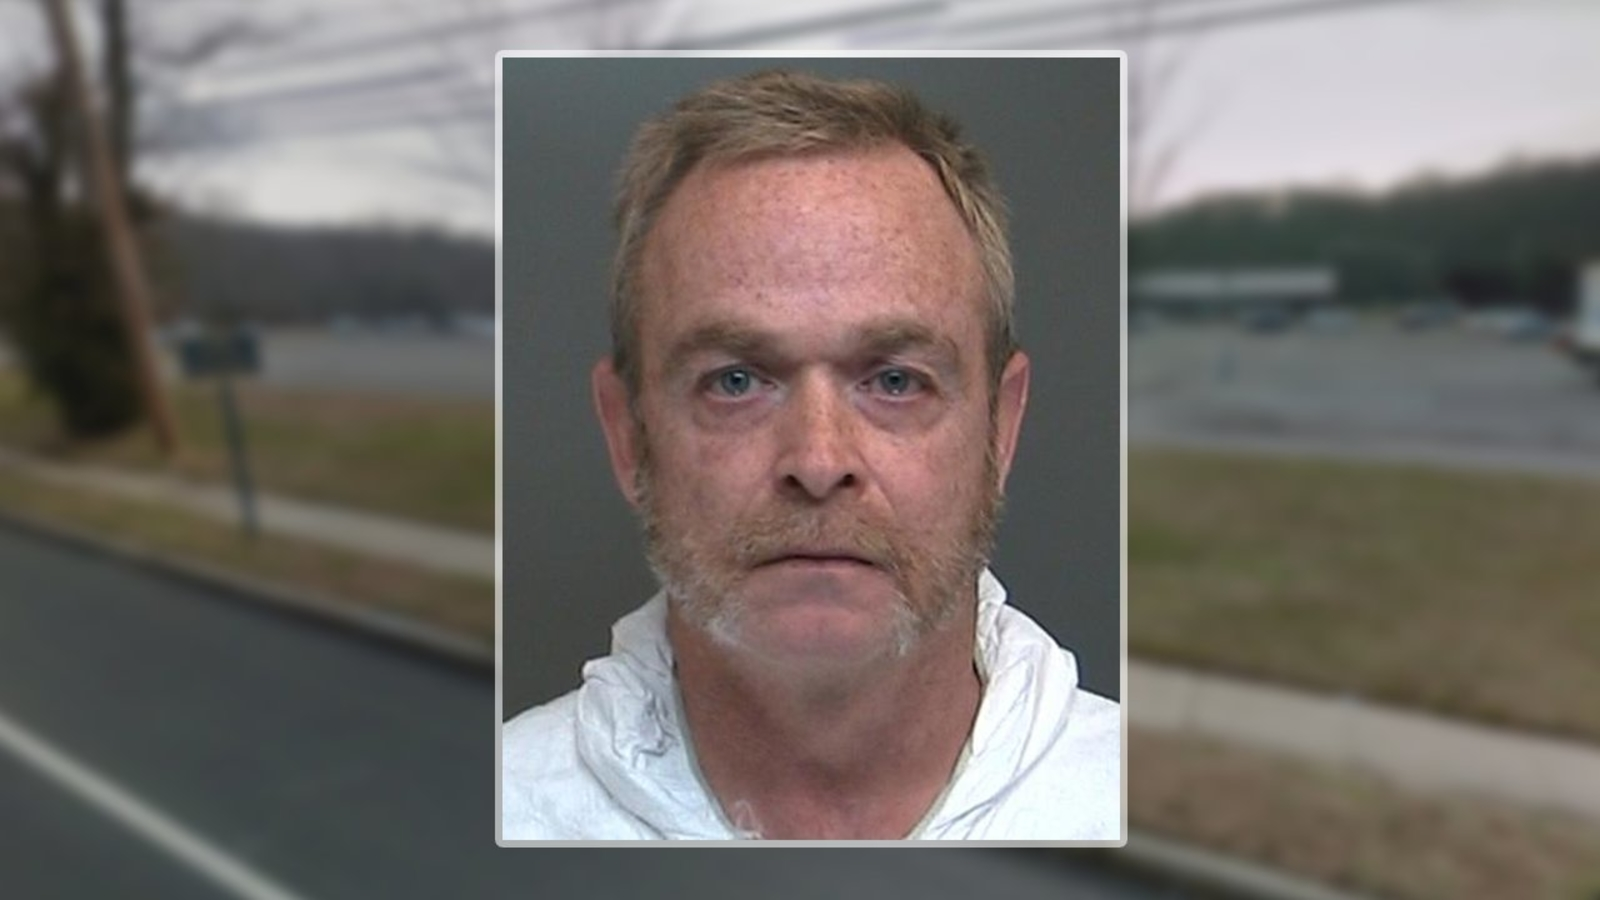 Police: Convicted sex offender Kieran Bunce found naked